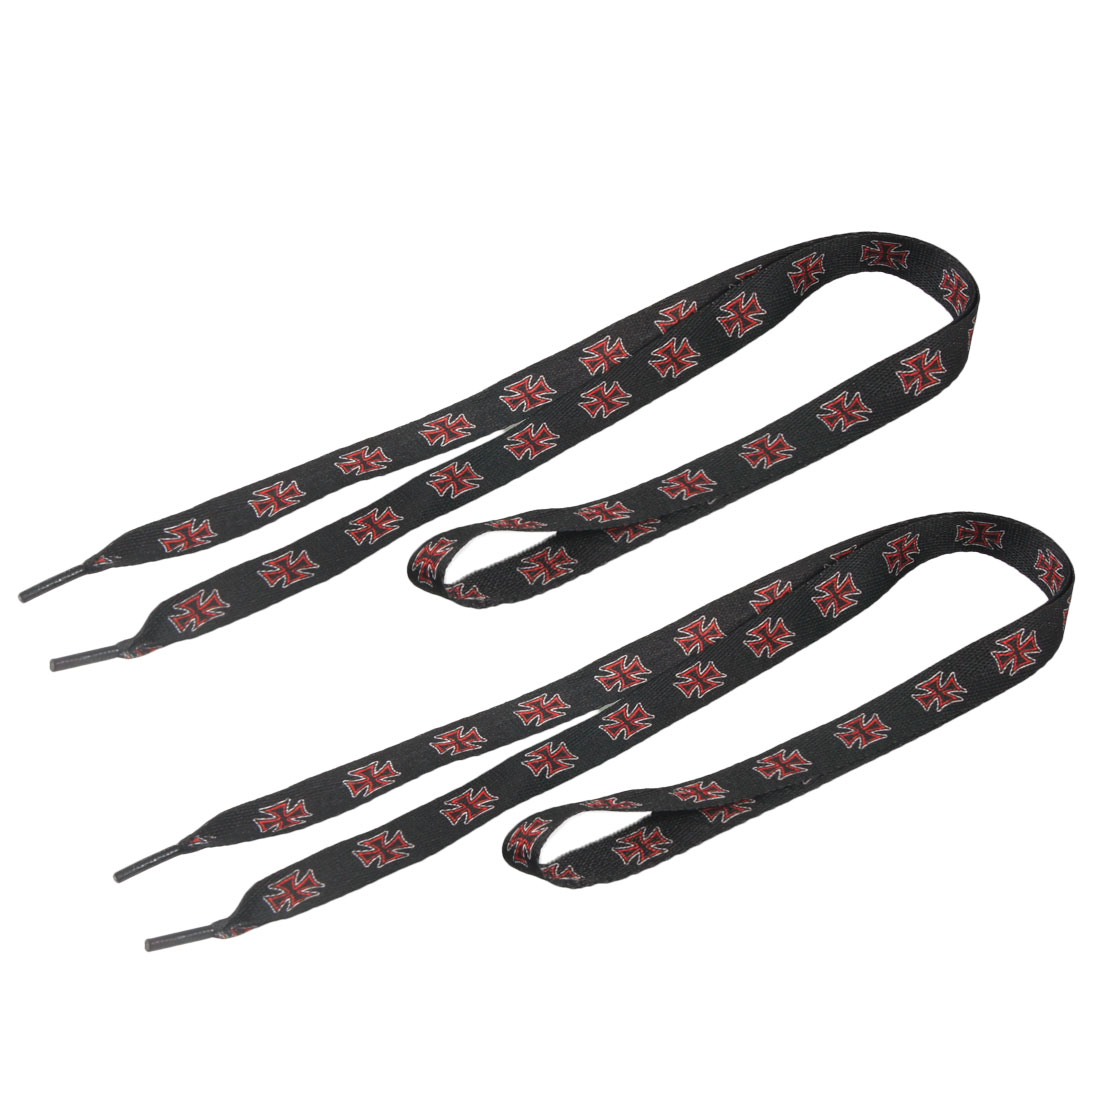 Pair Red White Novelty Print Plastic Tip Black Flat Shoelaces 45""